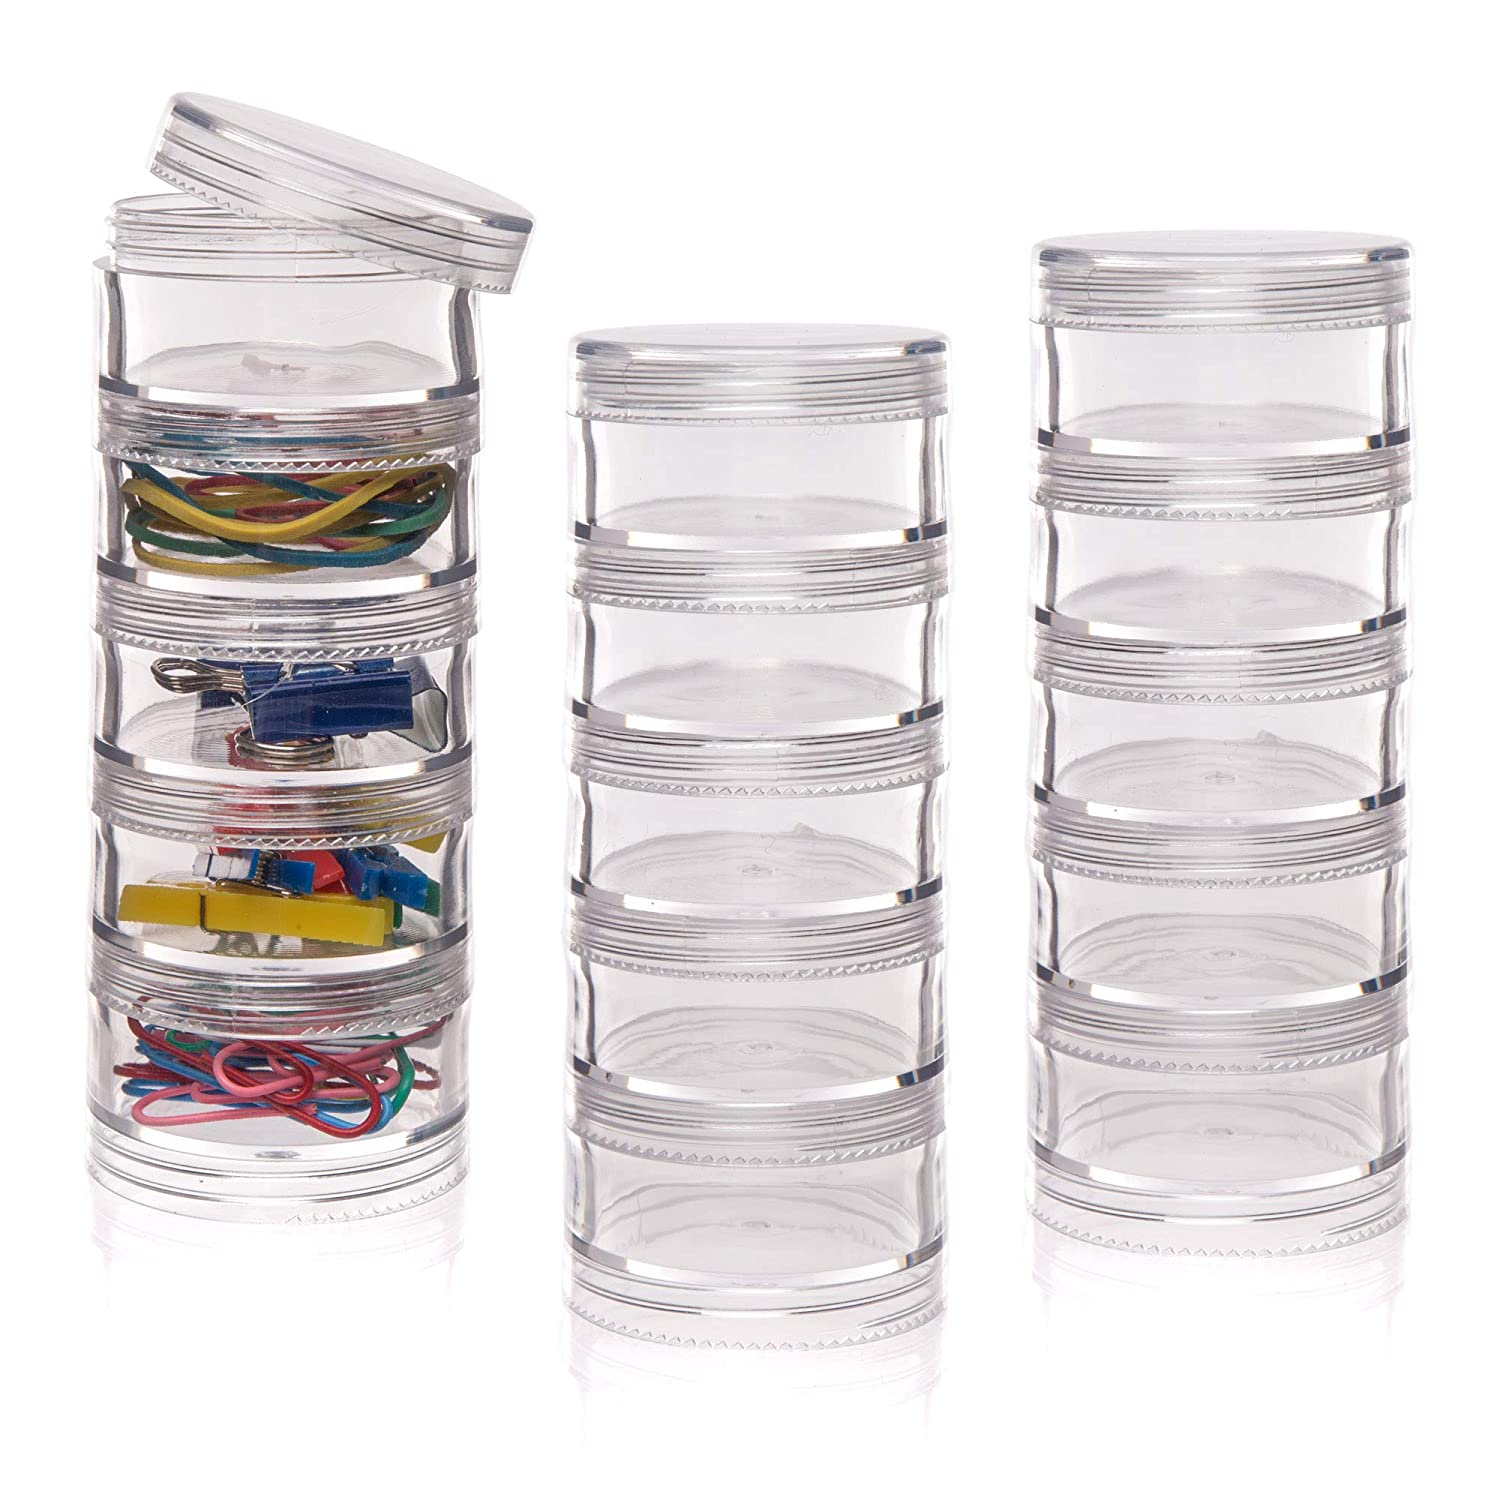 Tidy and Store Craft Materials Ideal for School Organise Baker Ross Stackable Screw Top Storage Pots Home Perfect to Fill Pack of 3 Craft Groups and More